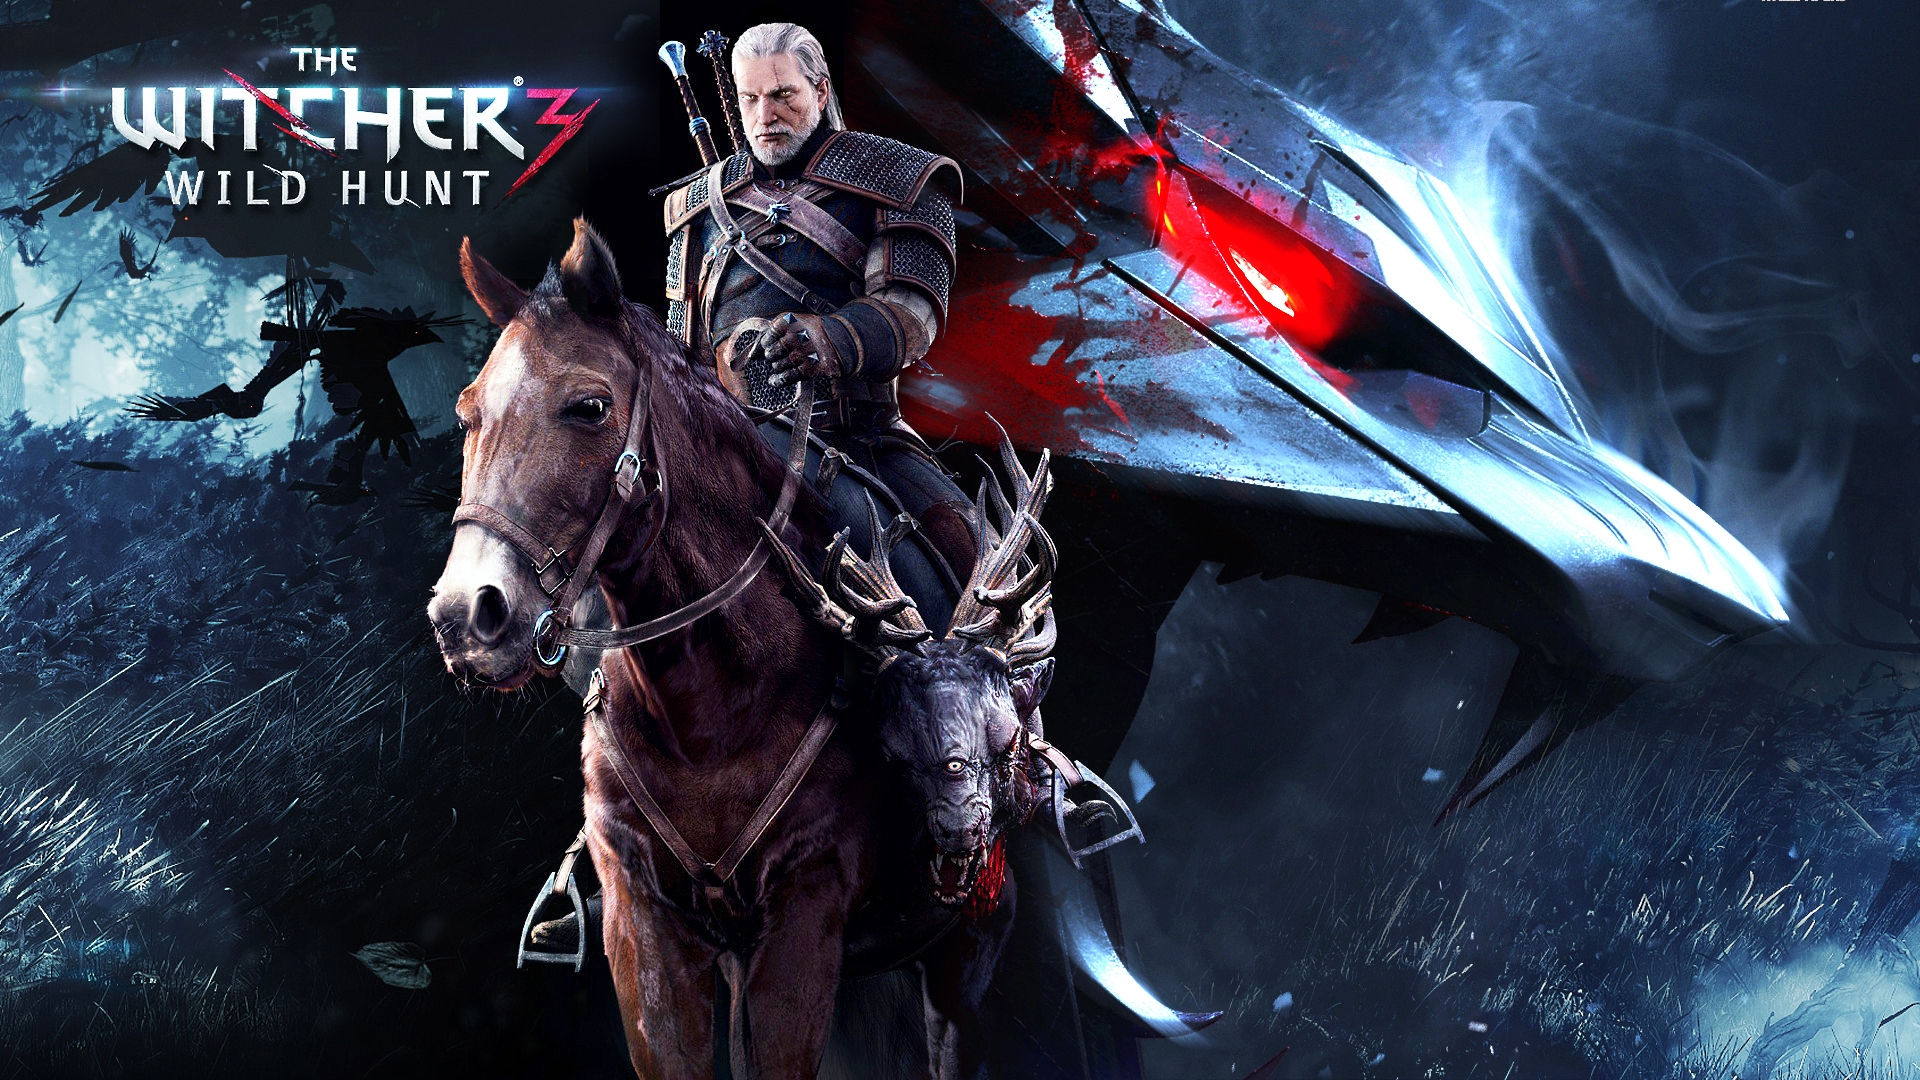 The Witcher3 Wild Hunt